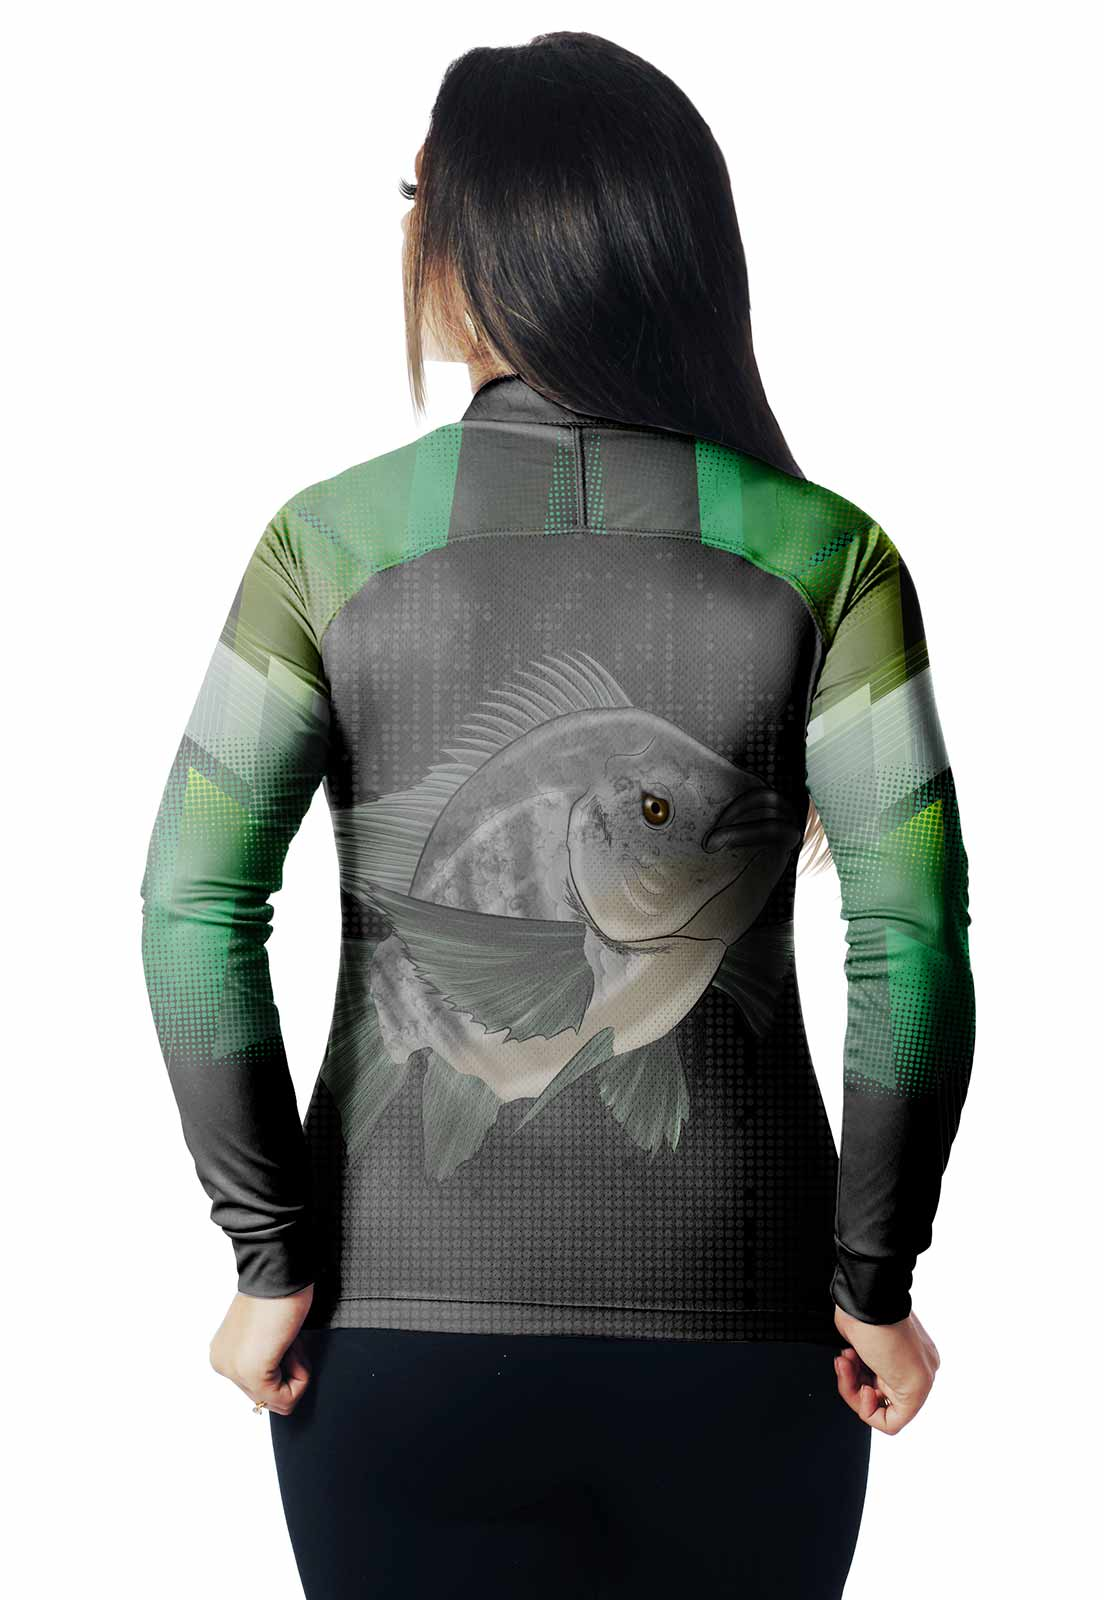 CAMISA DE PESCA FISH TILÁPIA 02 FEMININA + BANDANA GRÁTIS  - REAL HUNTER OUTDOORS